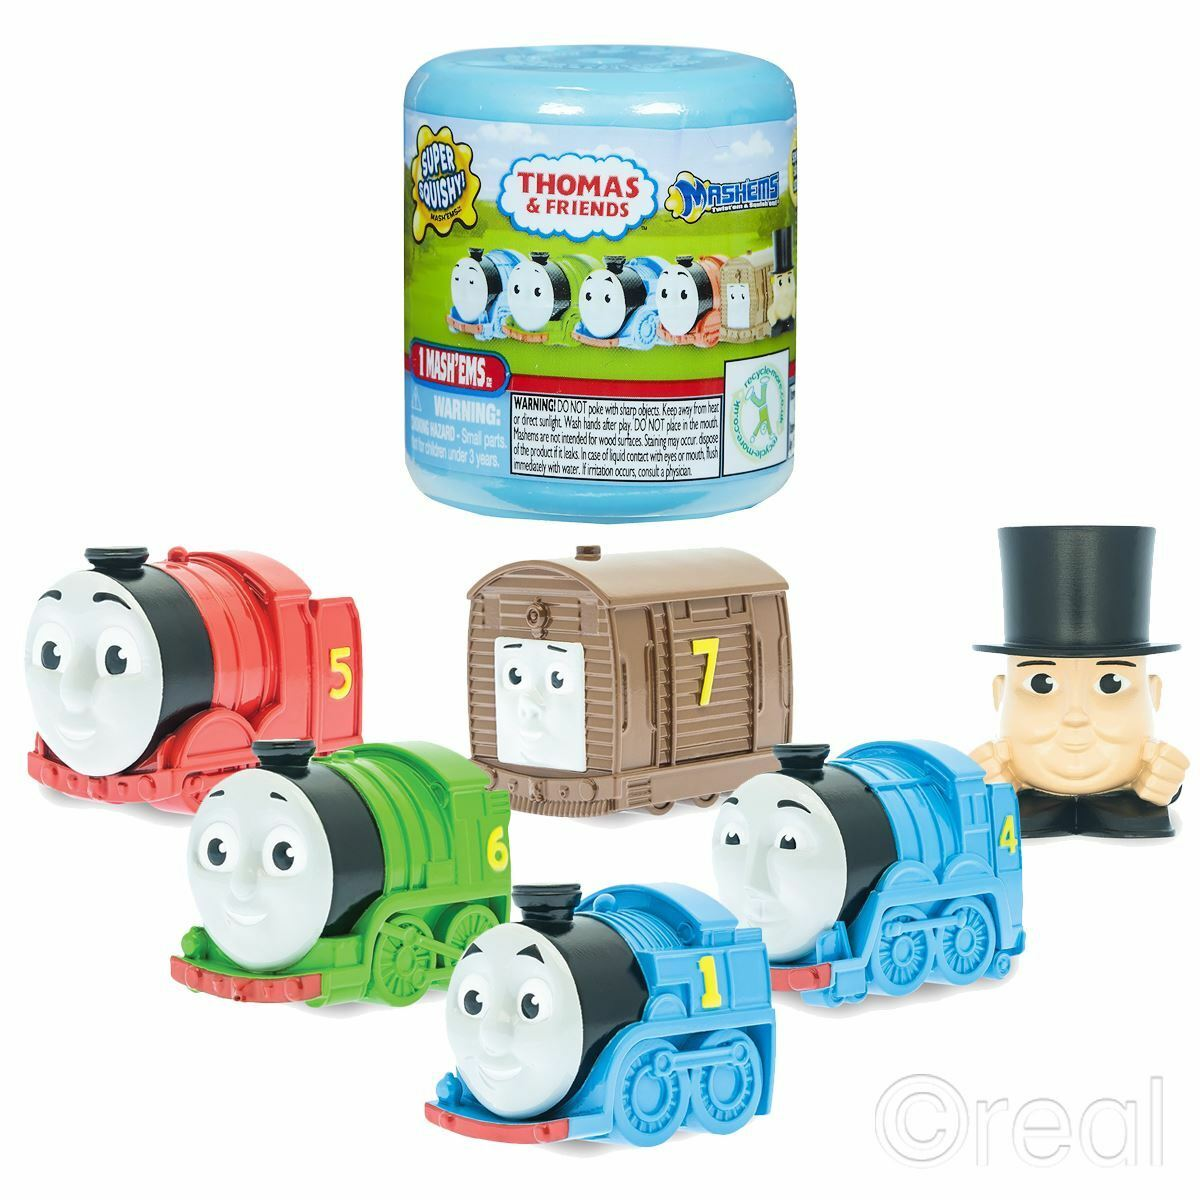 New 1 3 5 Or 10 Thomas The Tank Engine & Friends Mash'ems Blind Capsule Official